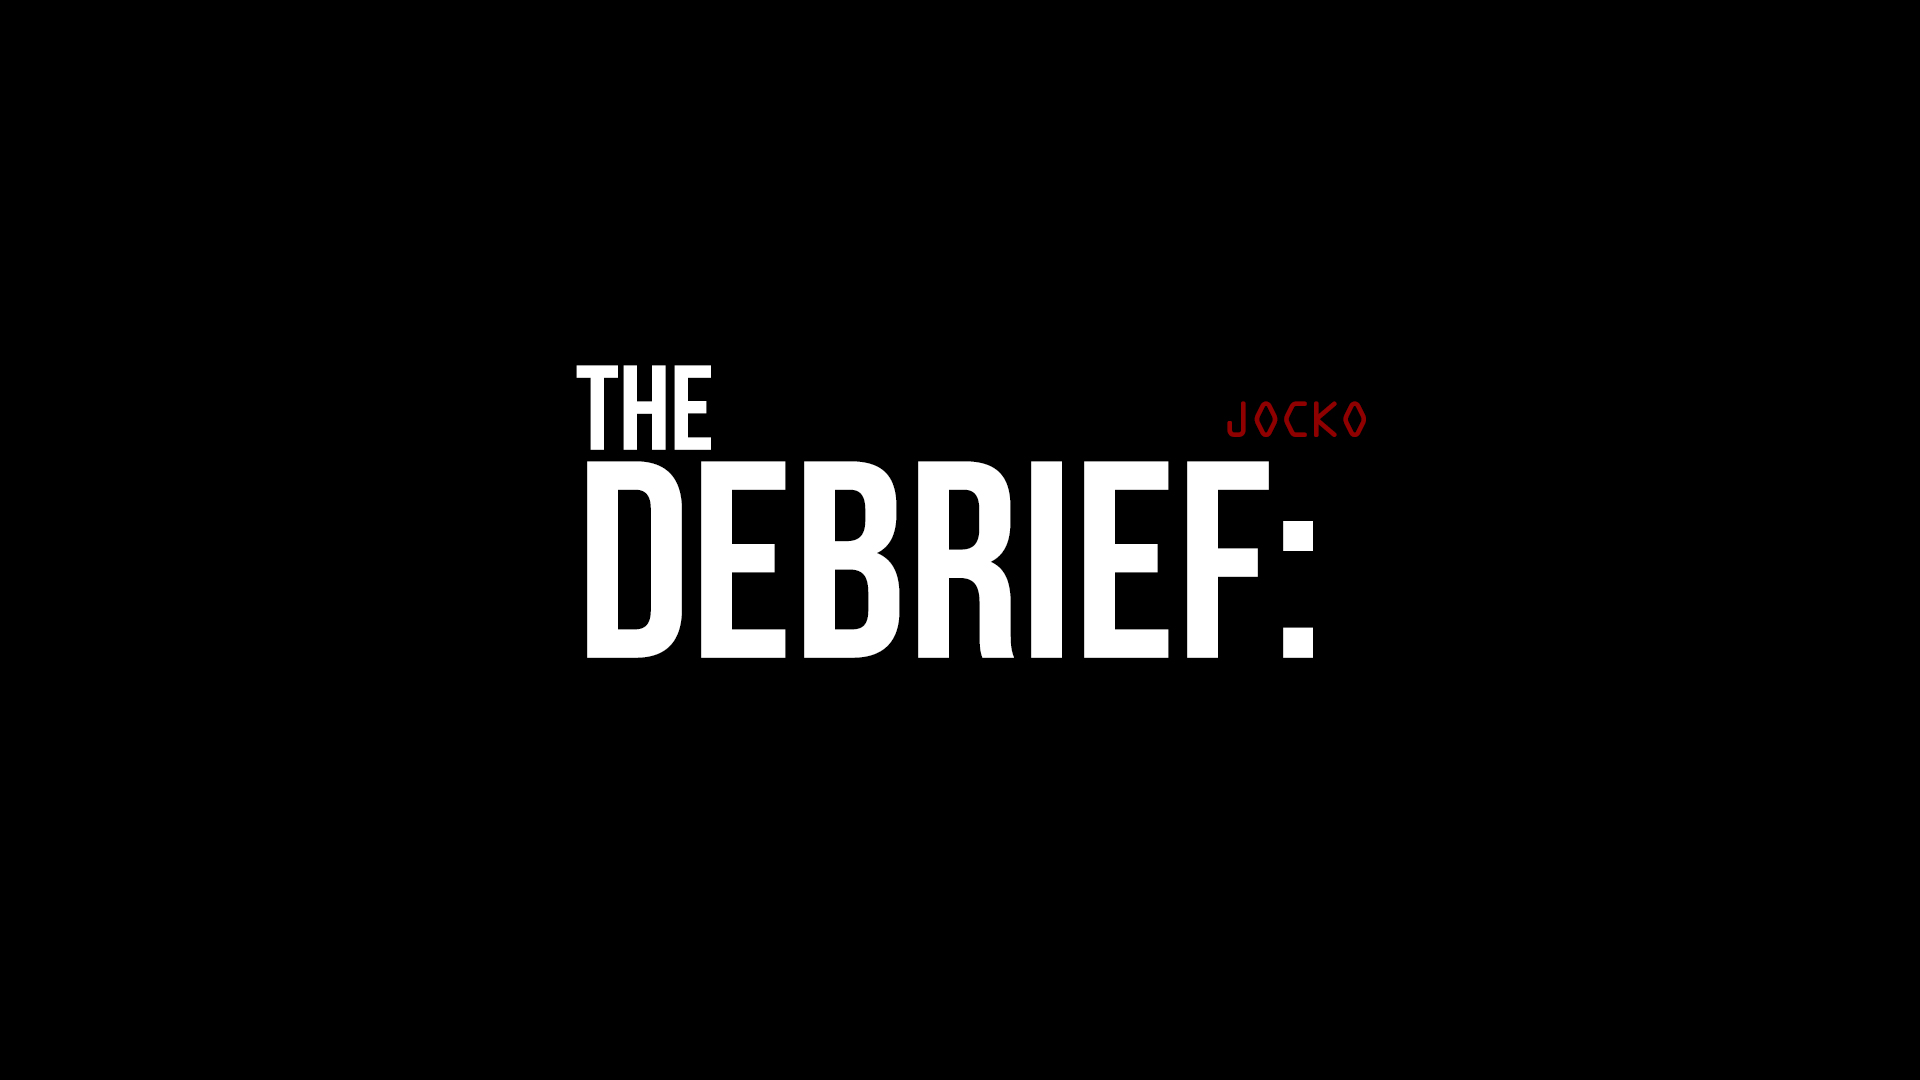 The Debrief w/ Jocko and Dave Berke #8: Getting The Team to Perform When the Leader Is Not Around